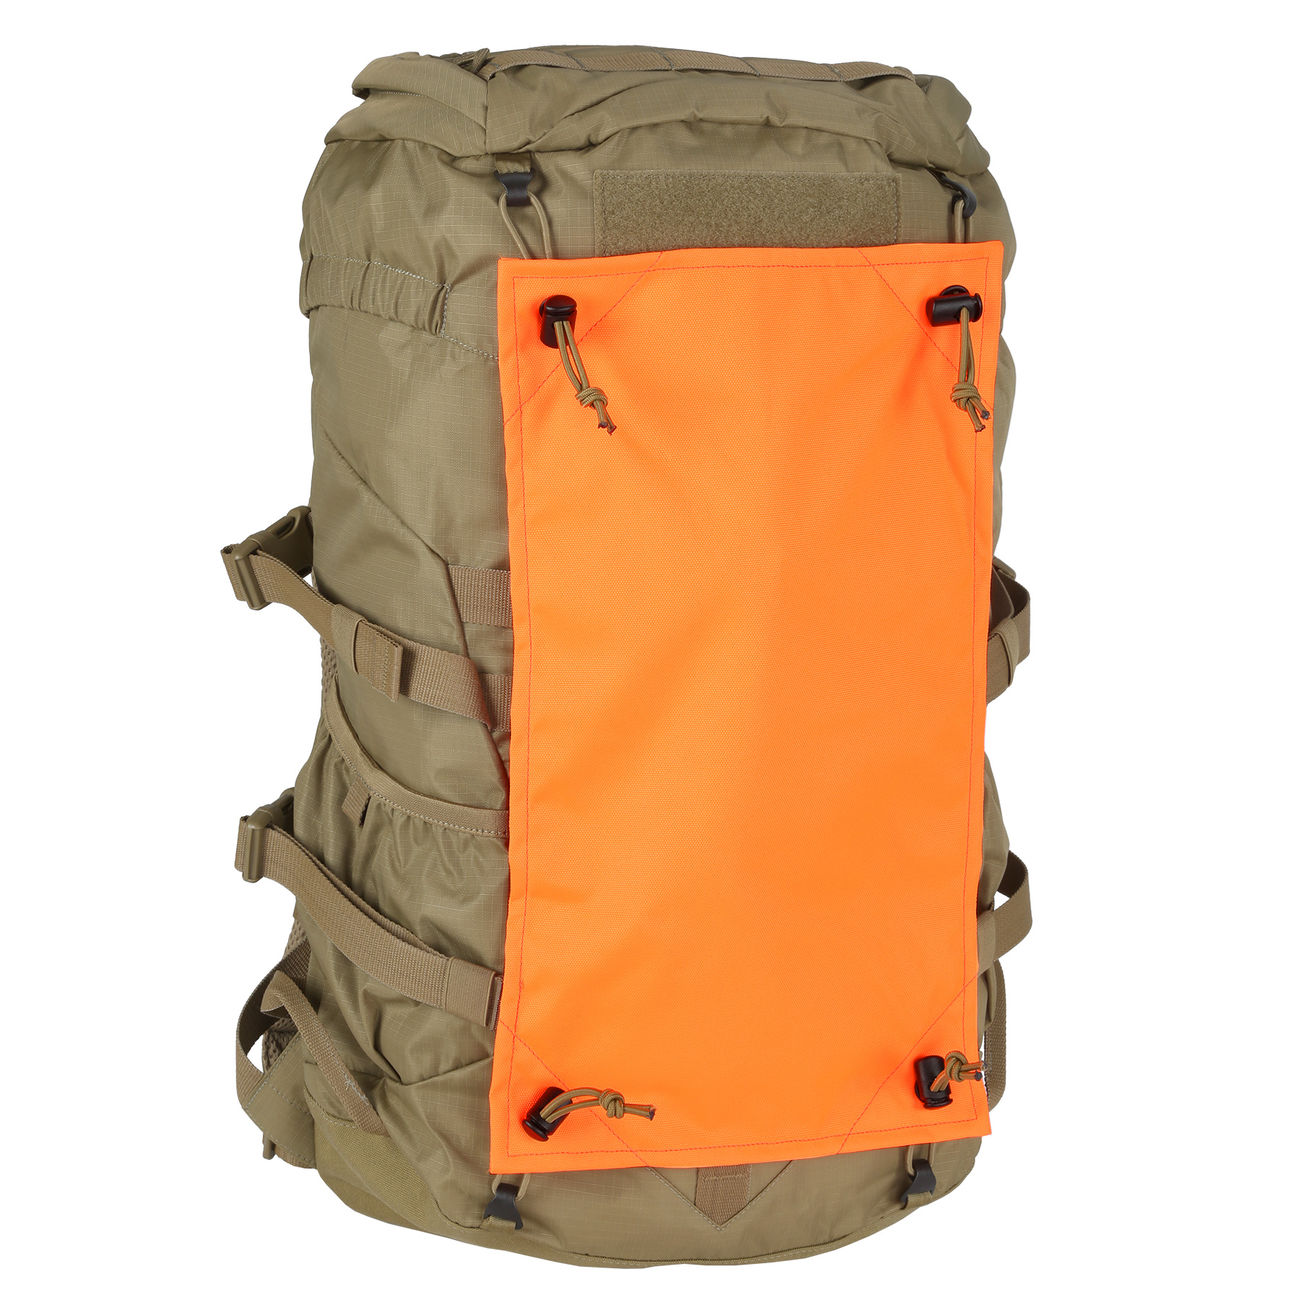 TT Rucksack Trooper Light Pack 35 khaki 10